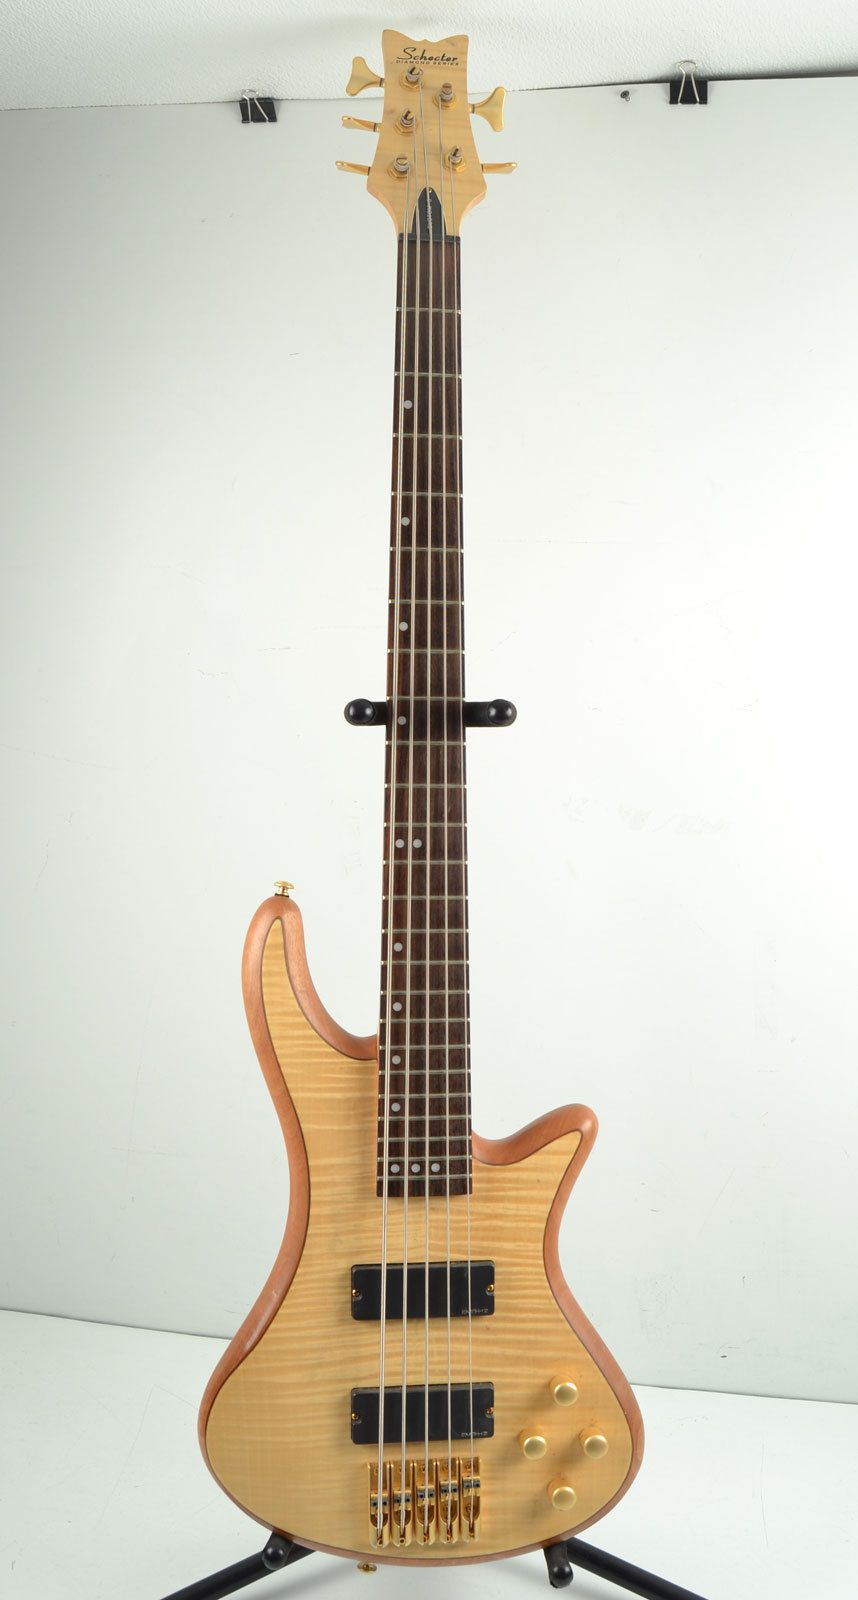 schecter custom 5 electric bass guitar 5 string emg hz nice rock bass guitars bass guitar. Black Bedroom Furniture Sets. Home Design Ideas